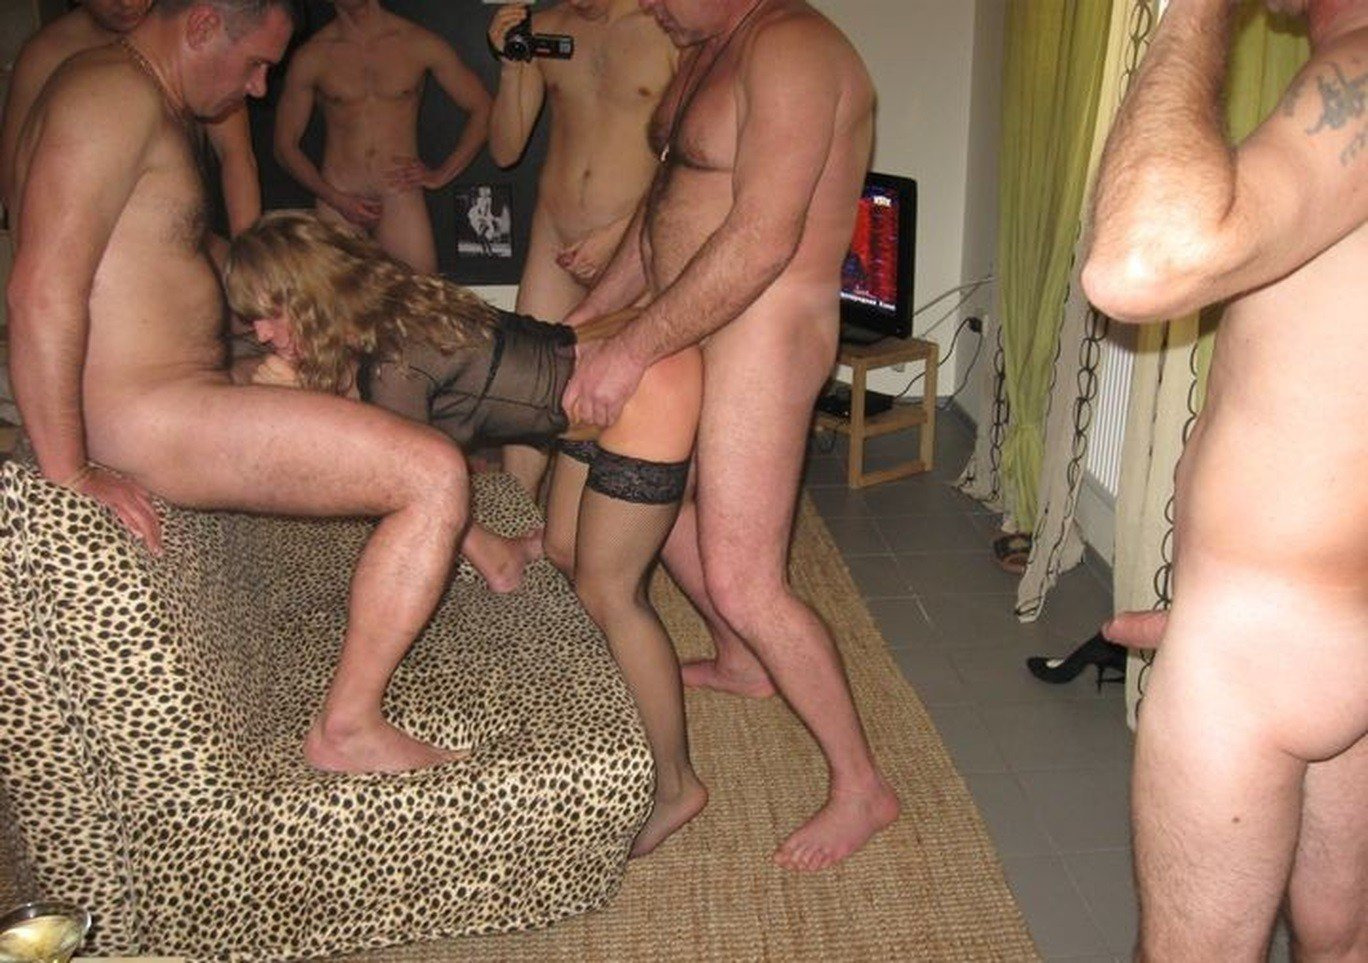 Very good Real sex party photo